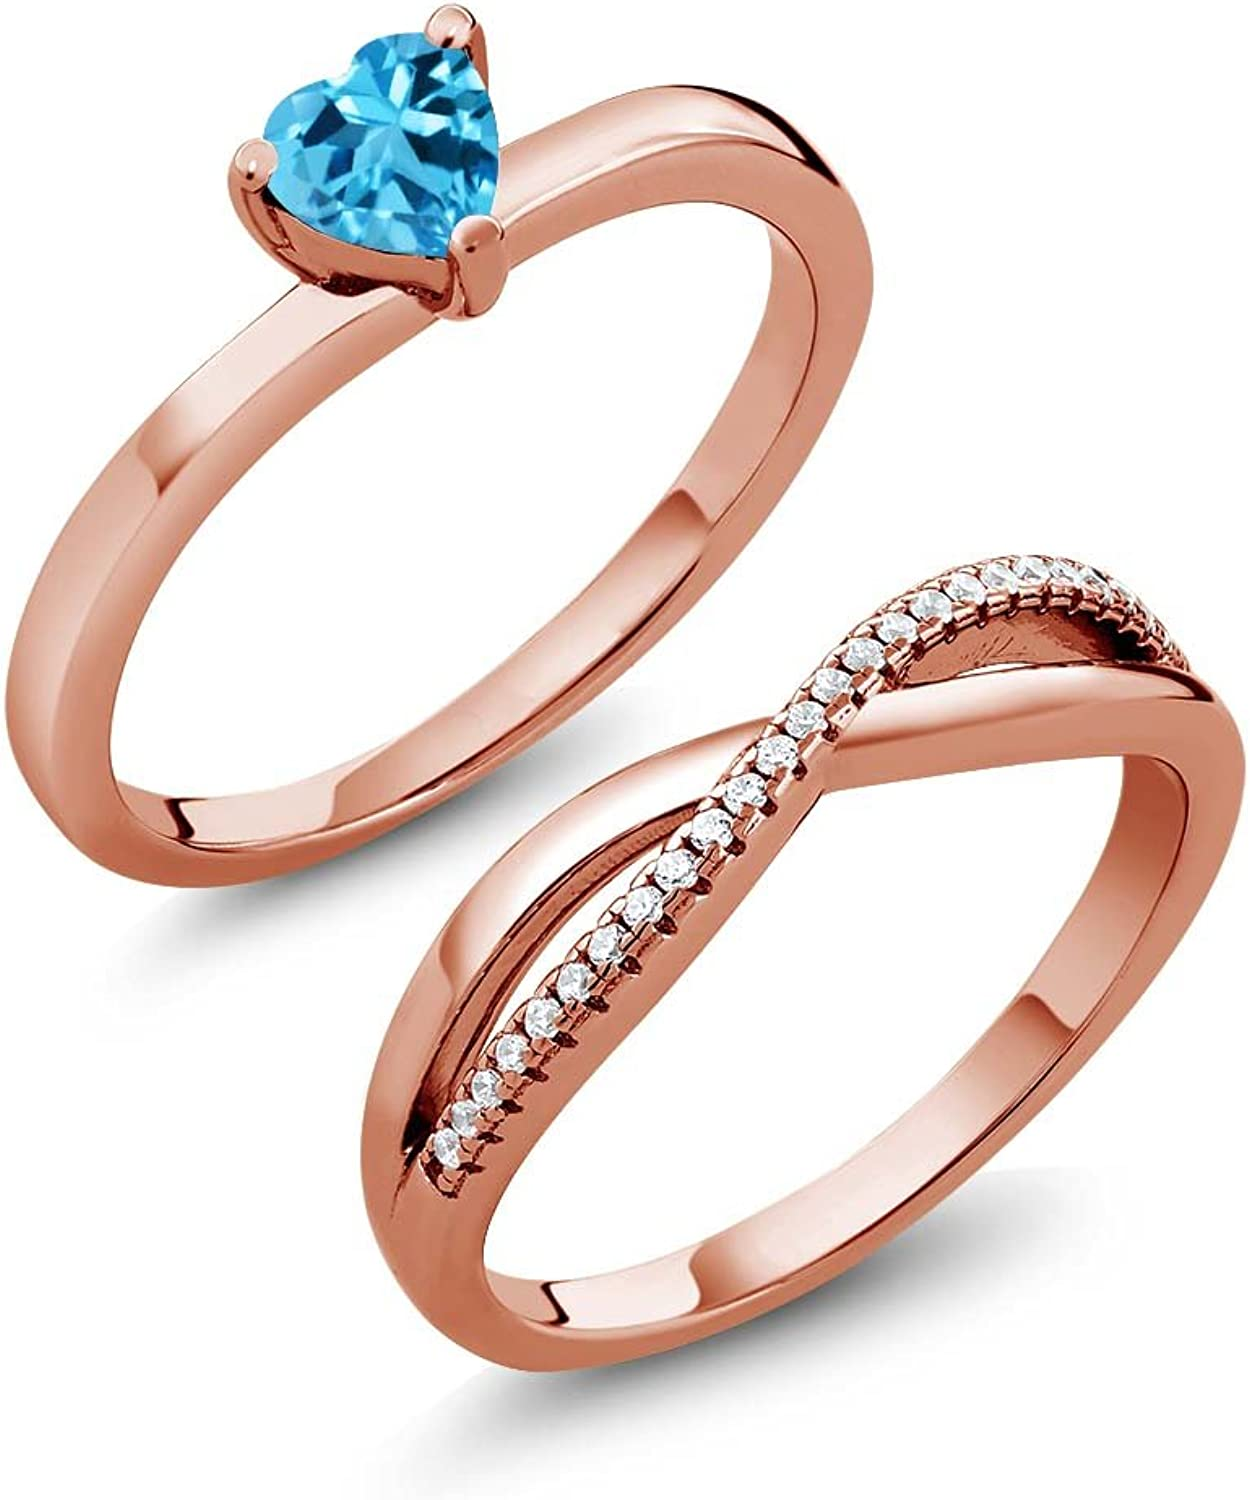 0.86 Ct Swiss bluee Topaz 18K pink gold Plated Silver Engagement Wedding Ring Set